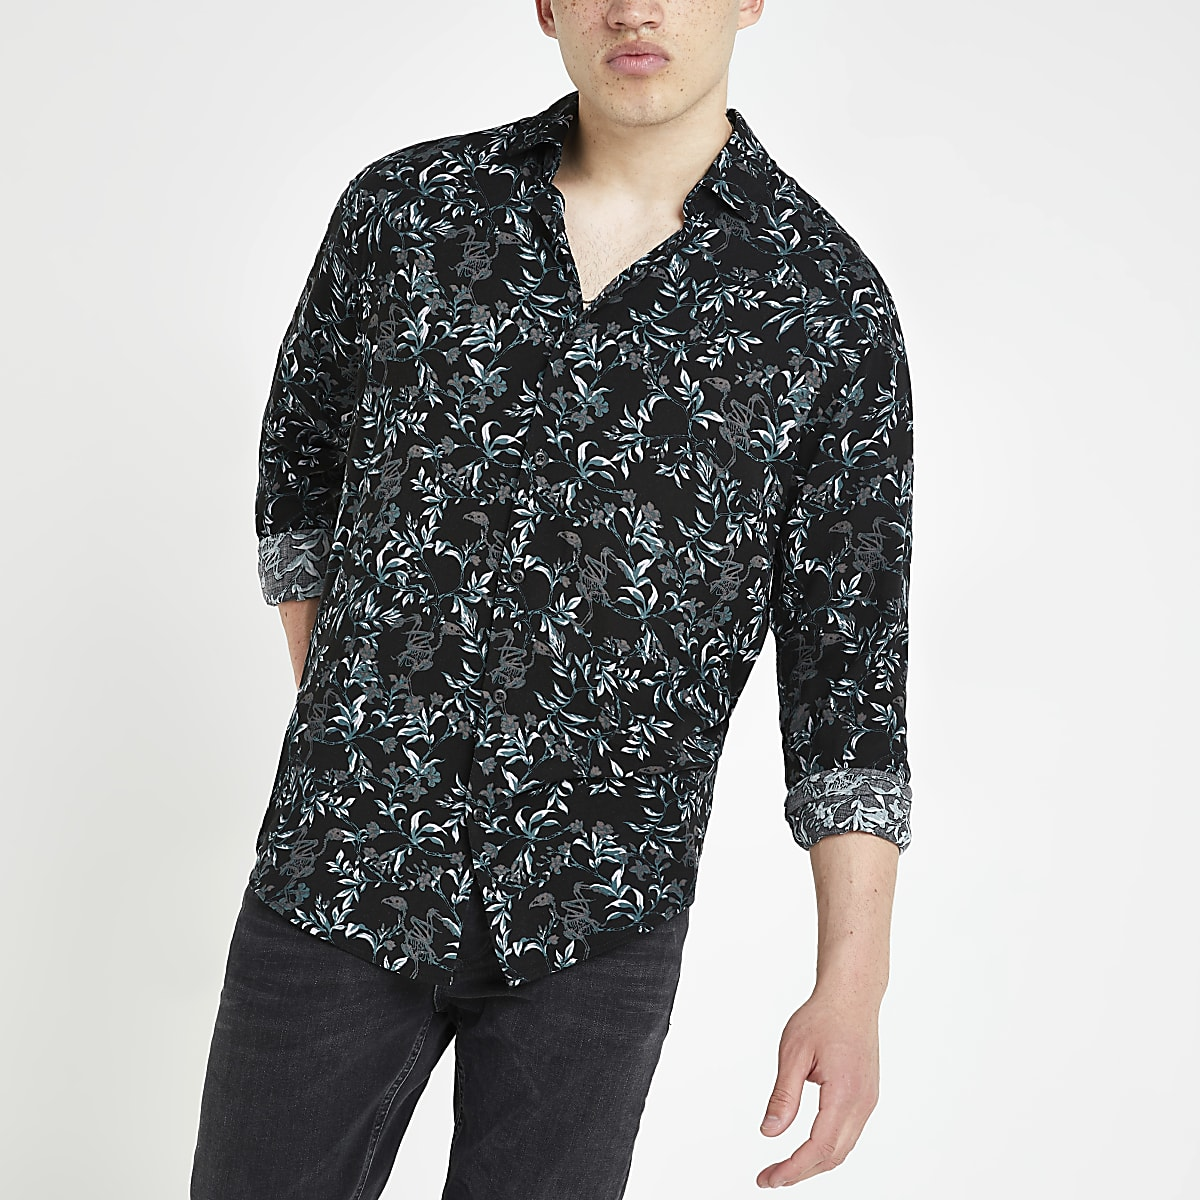 lowest price 42150 cb2af Jack and Jones black floral slim fit shirt